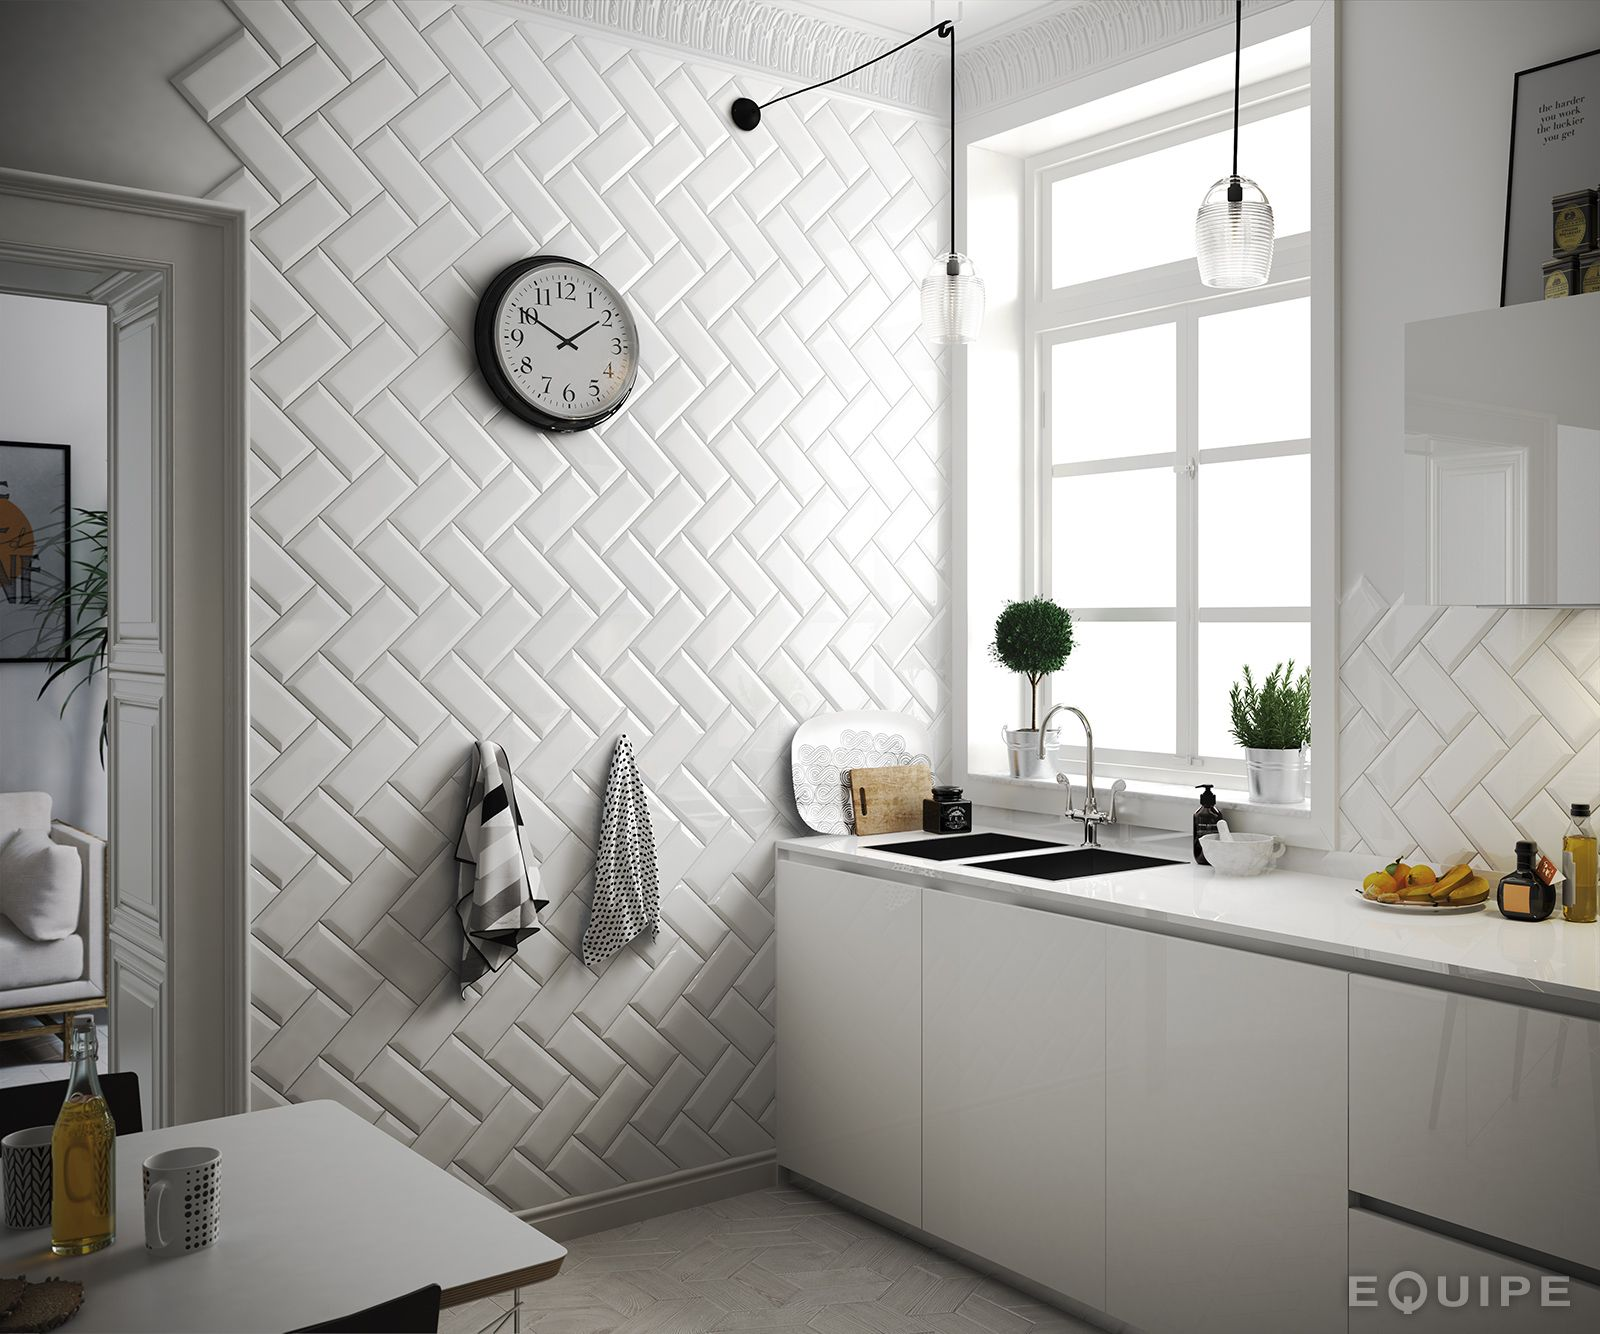 Interior Design For Kitchen Tiles: Metro White 10x20. #architecture, #architect, #bath